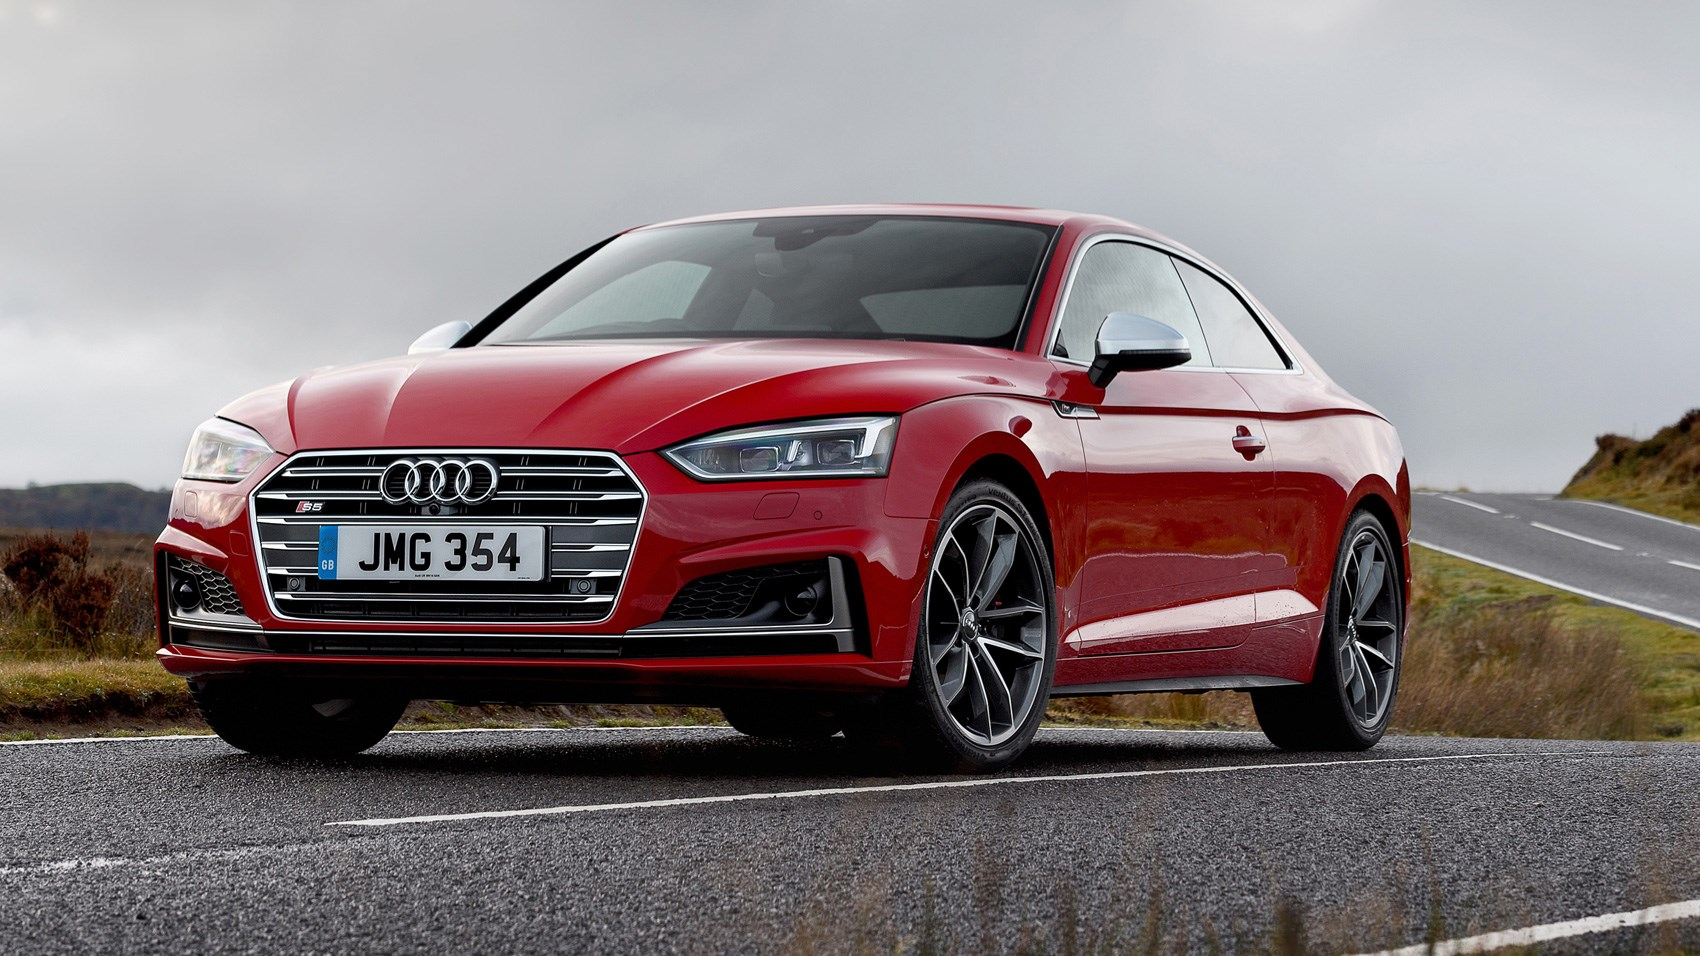 Audi S5 Lease >> Audi S5 3.0-litre TSI Quattro Tiptronic (2016) review | CAR Magazine